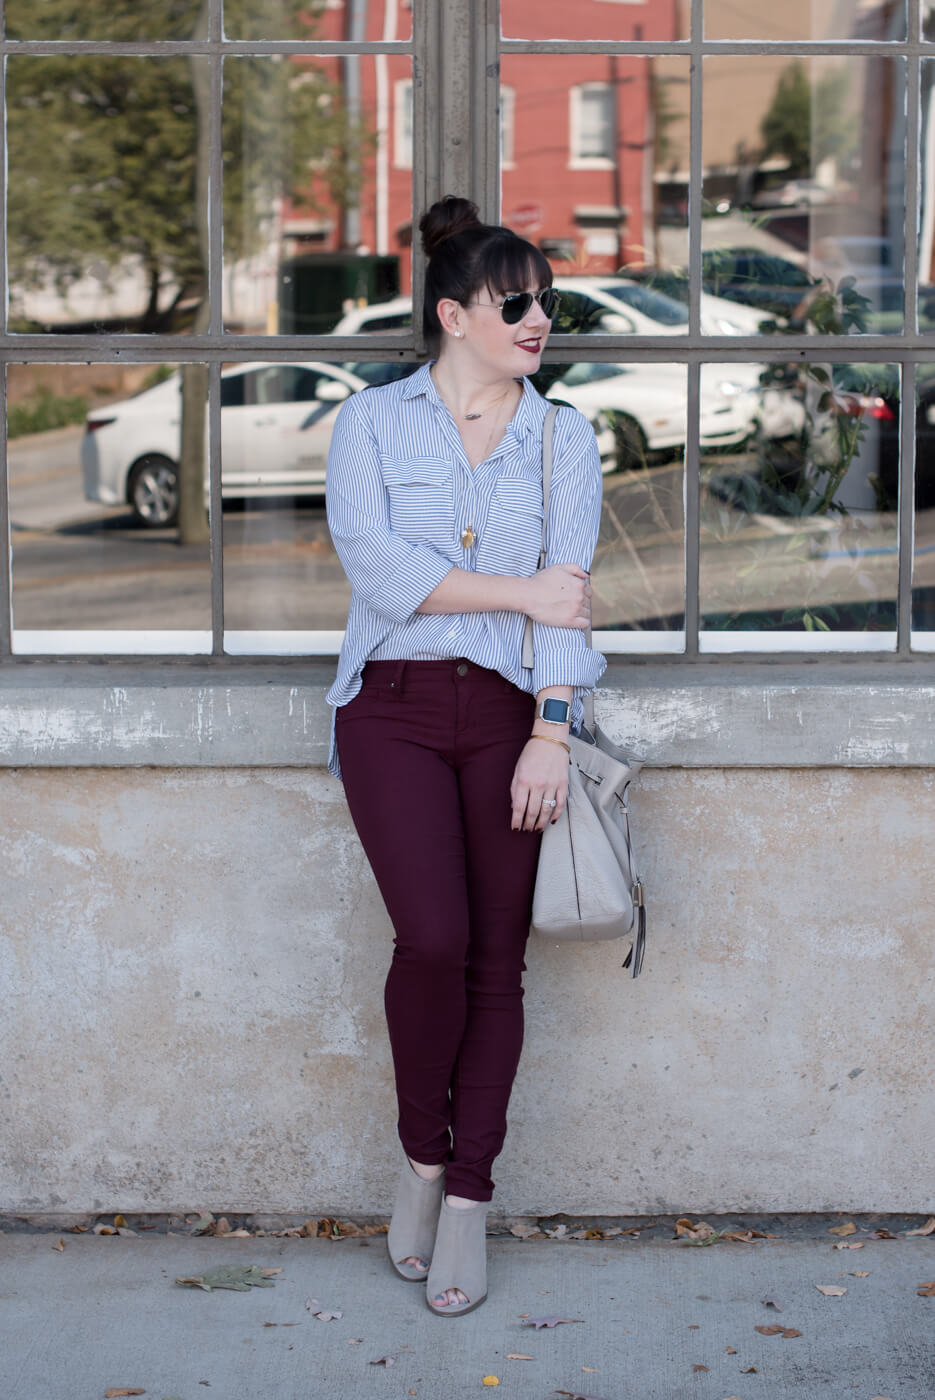 Maroon Denim for Fall, YMI Jeans | @missmollymoon